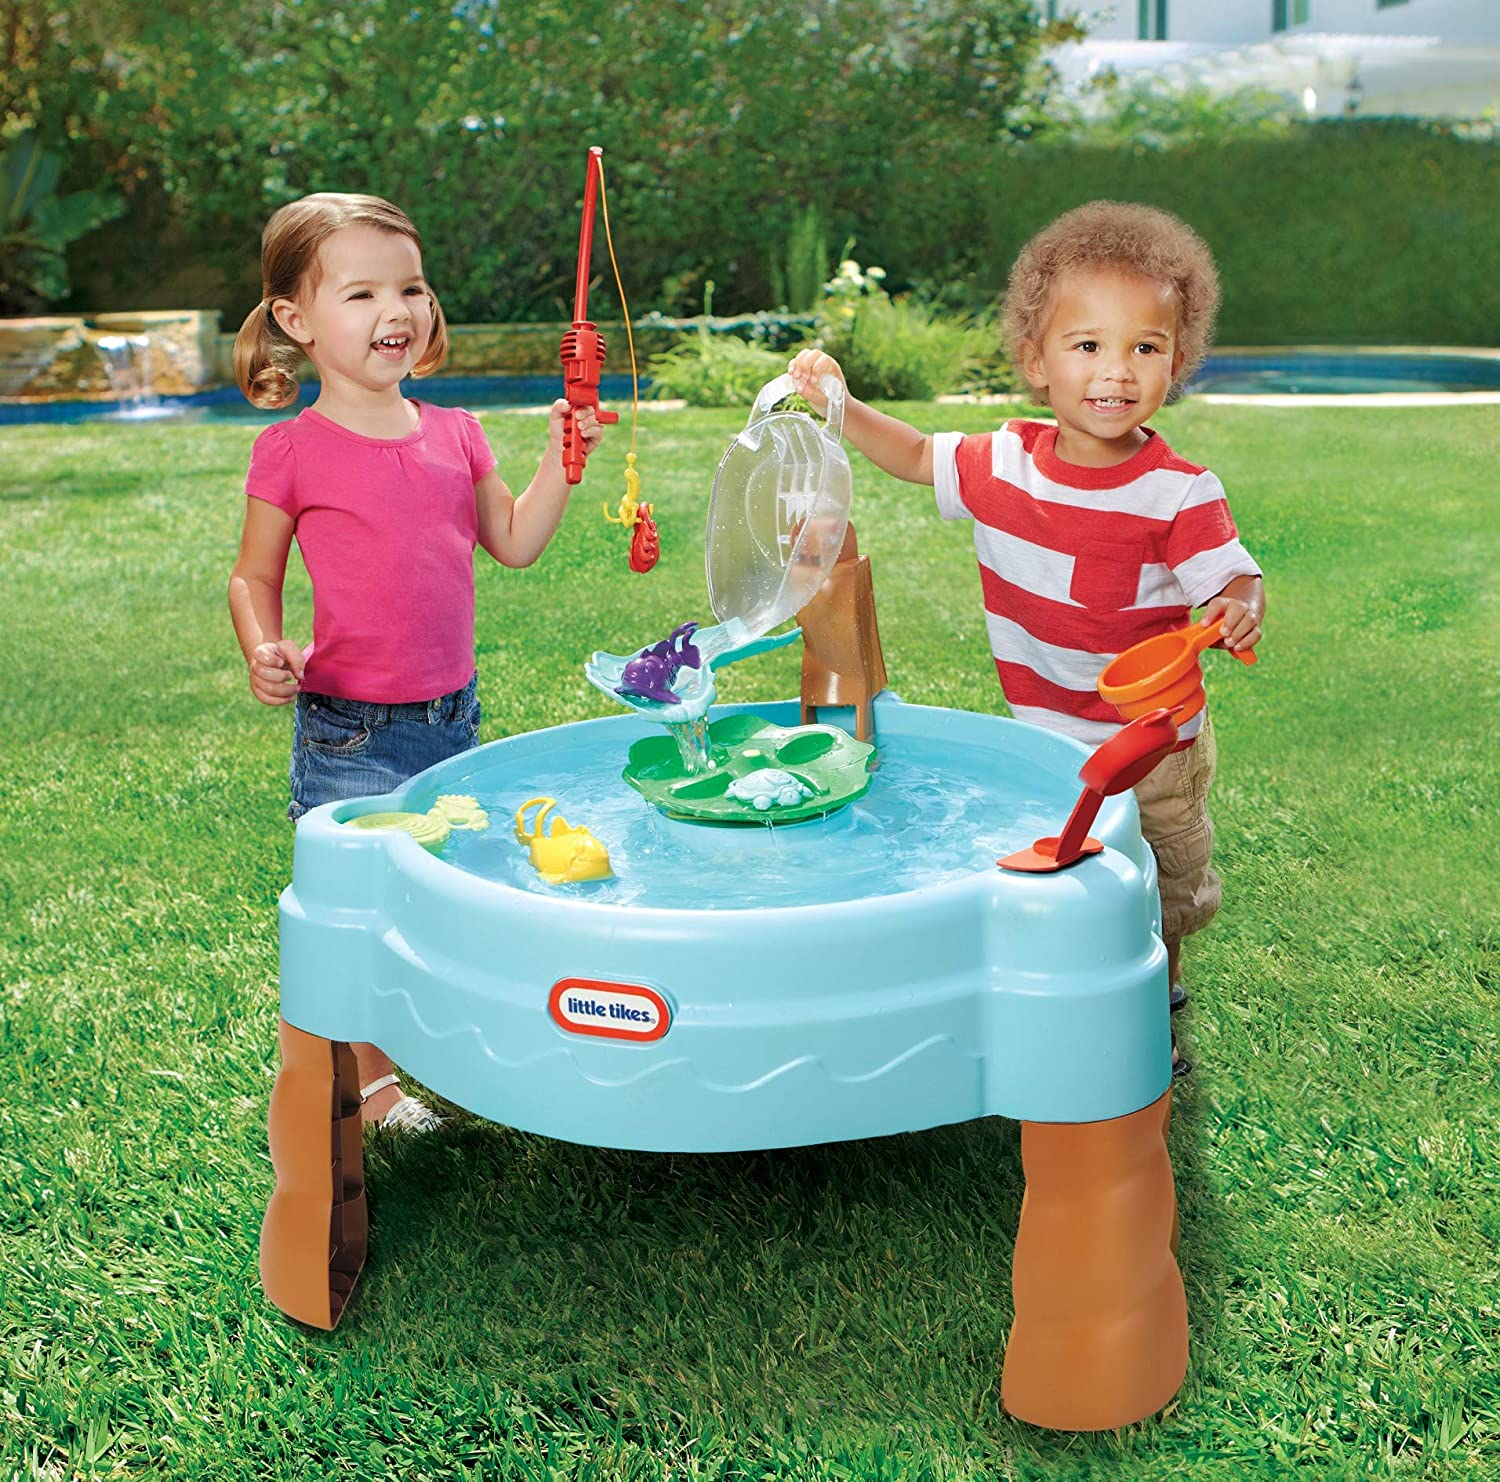 kids playing with water table